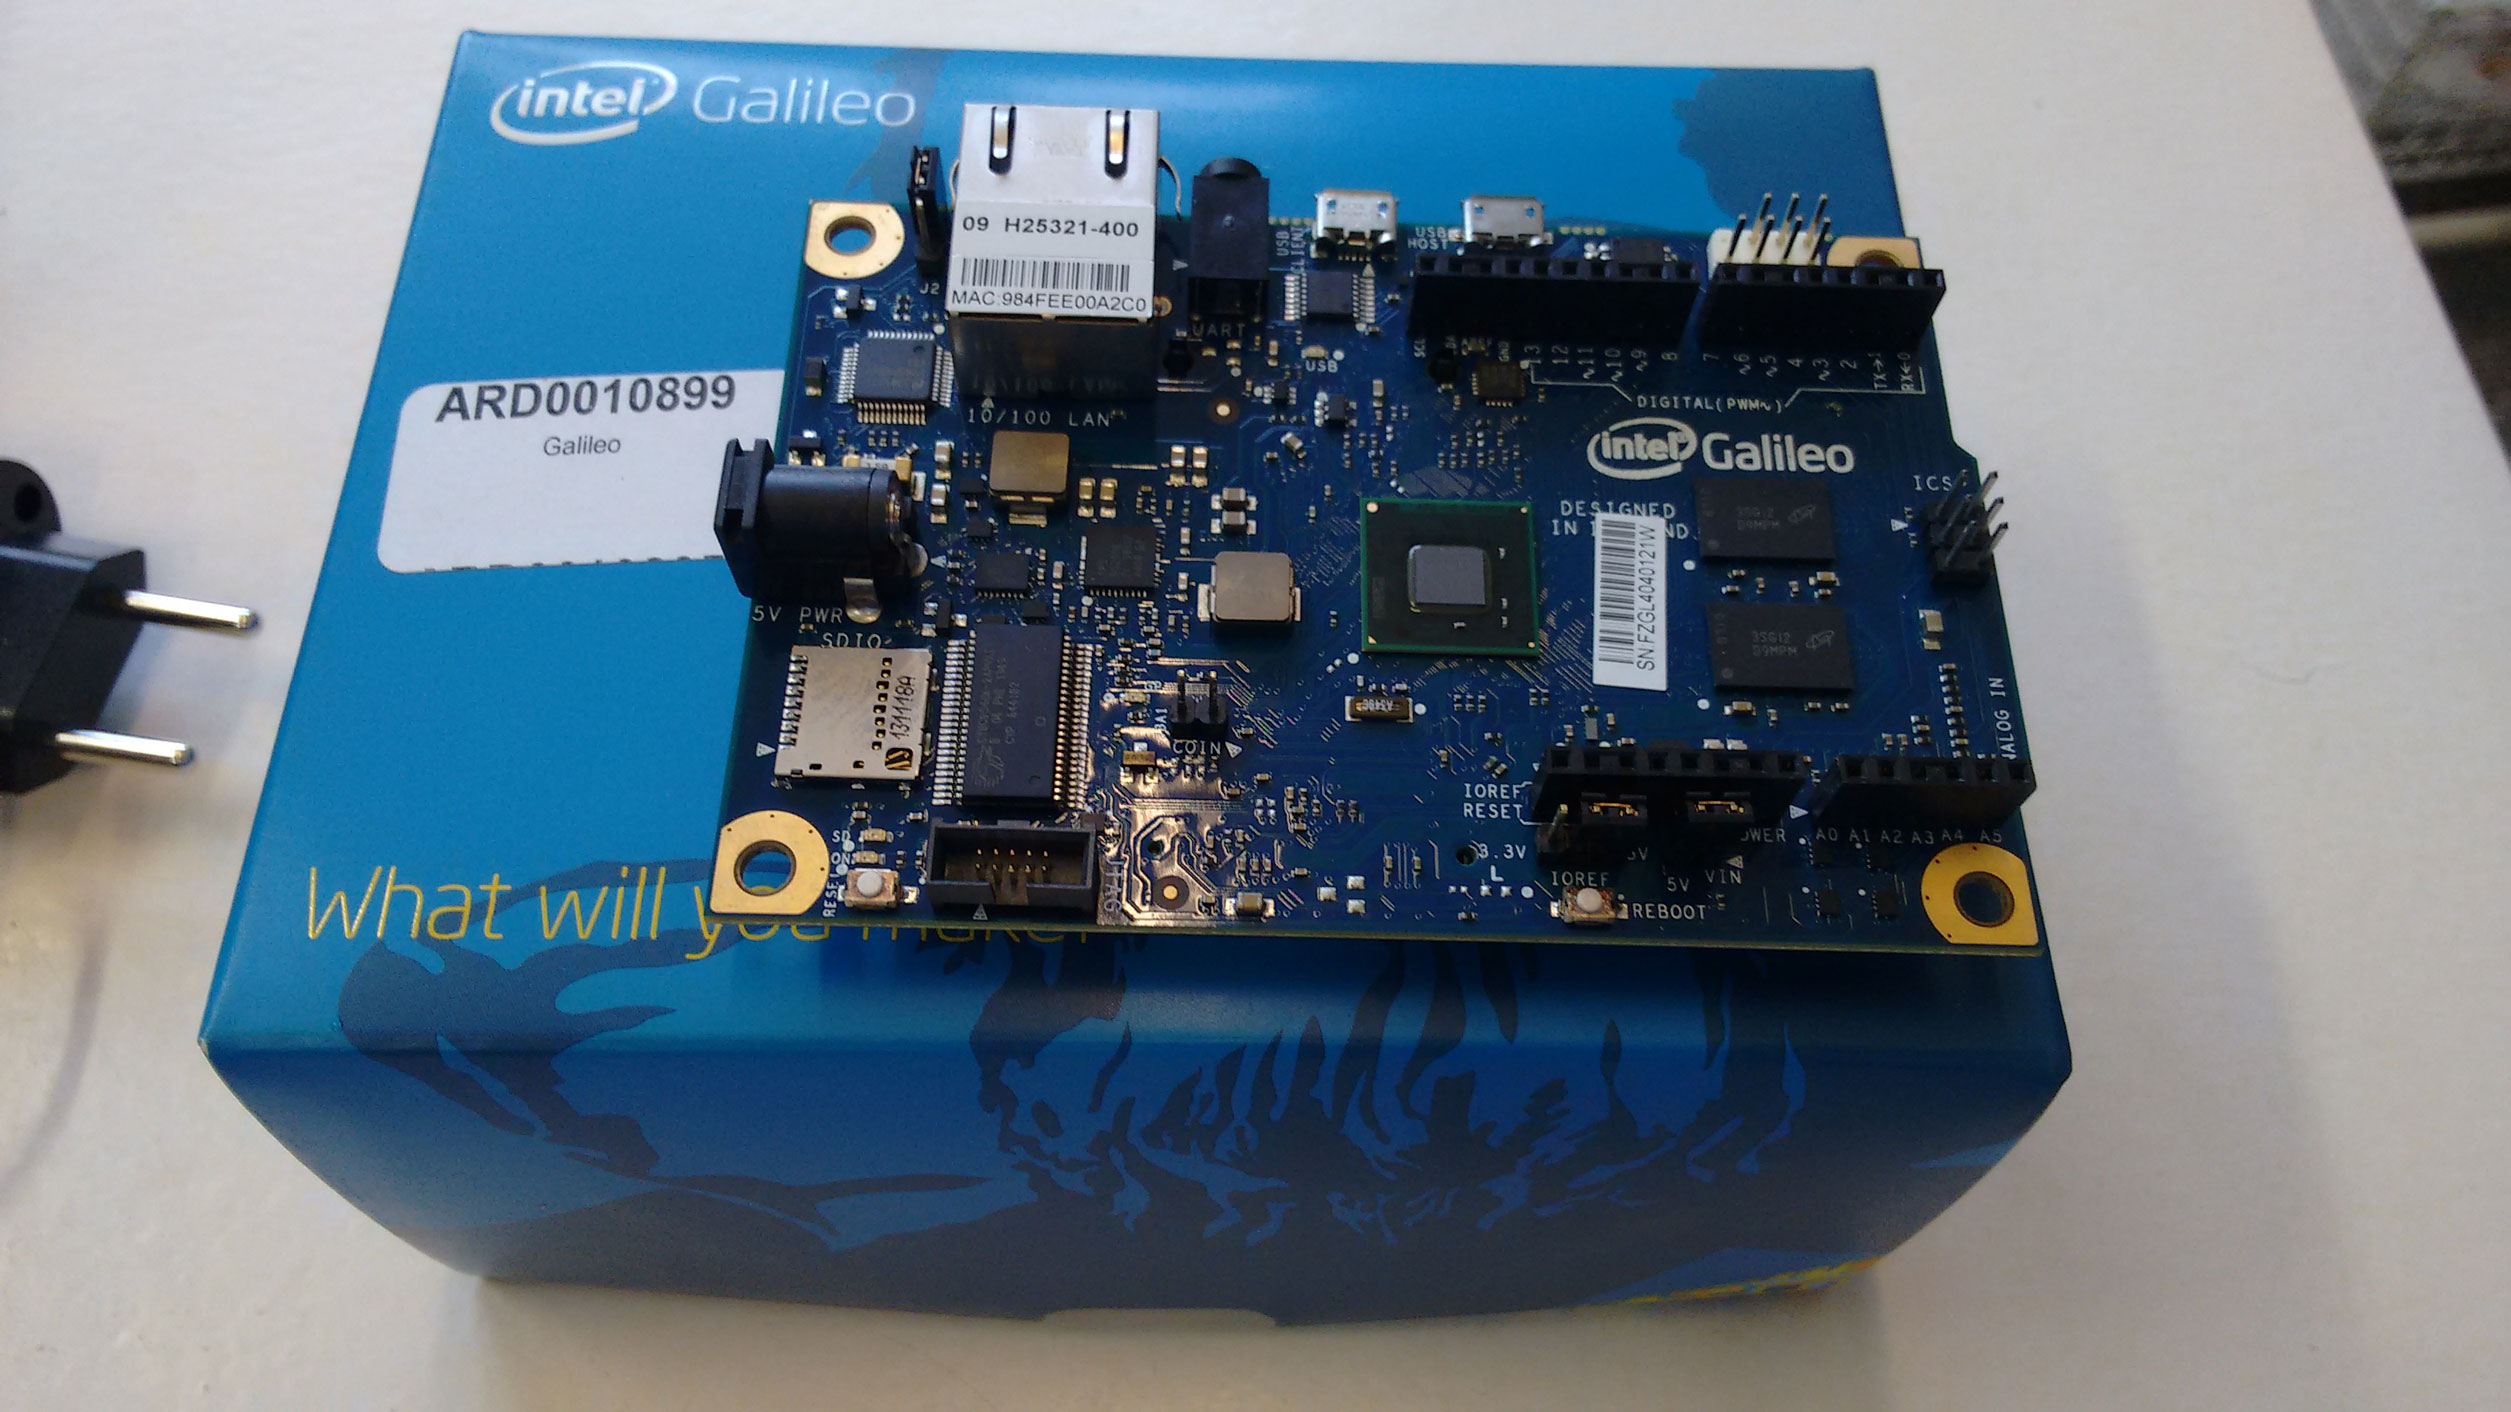 Intel Galileo 2 – DEV-1309